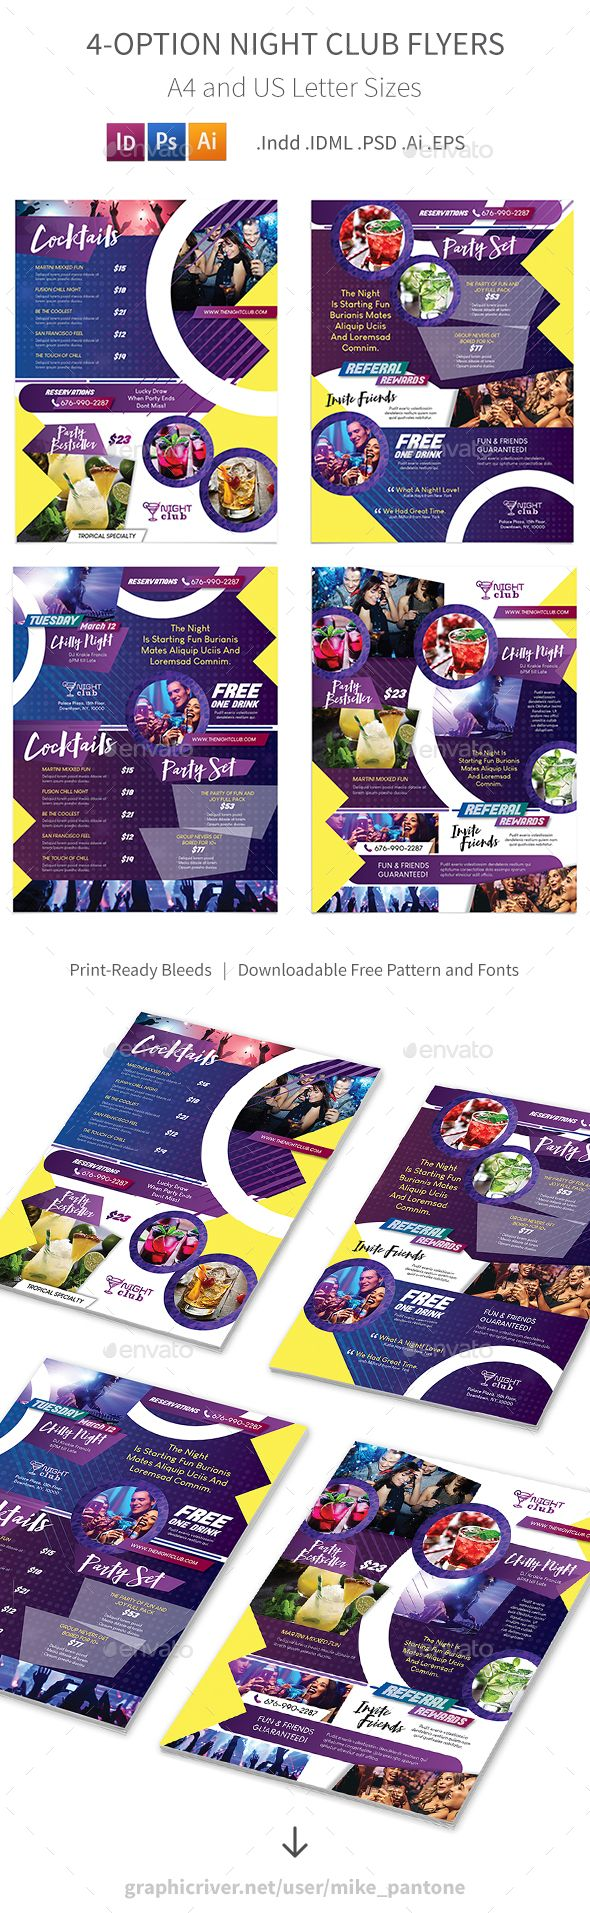 #Night Club #Flyers – 4 Options - Corporate Flyers